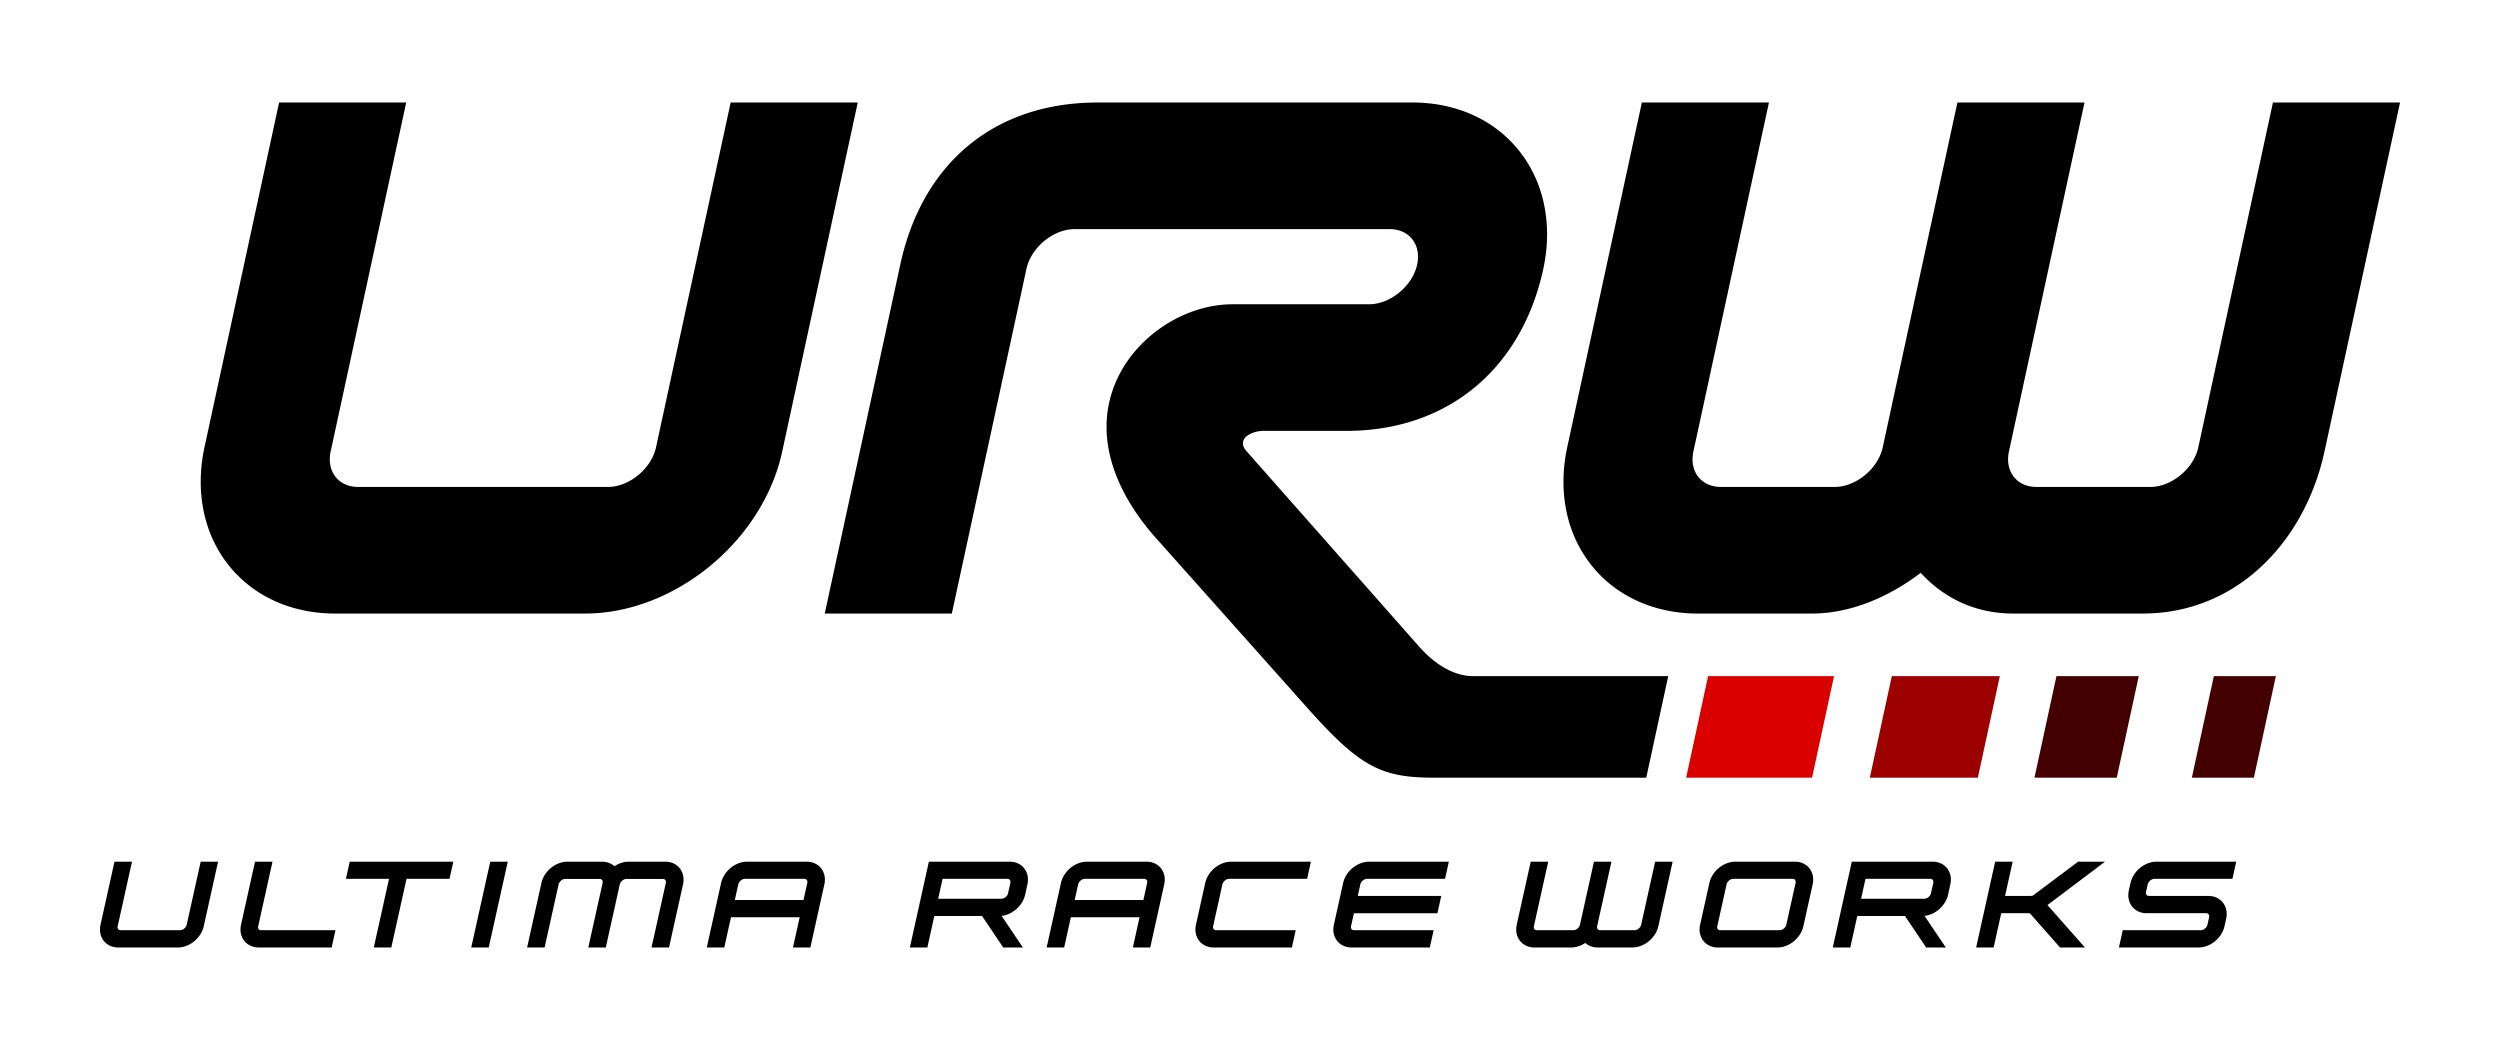 RACE SHOP LOGO / LIVERY DESIGN